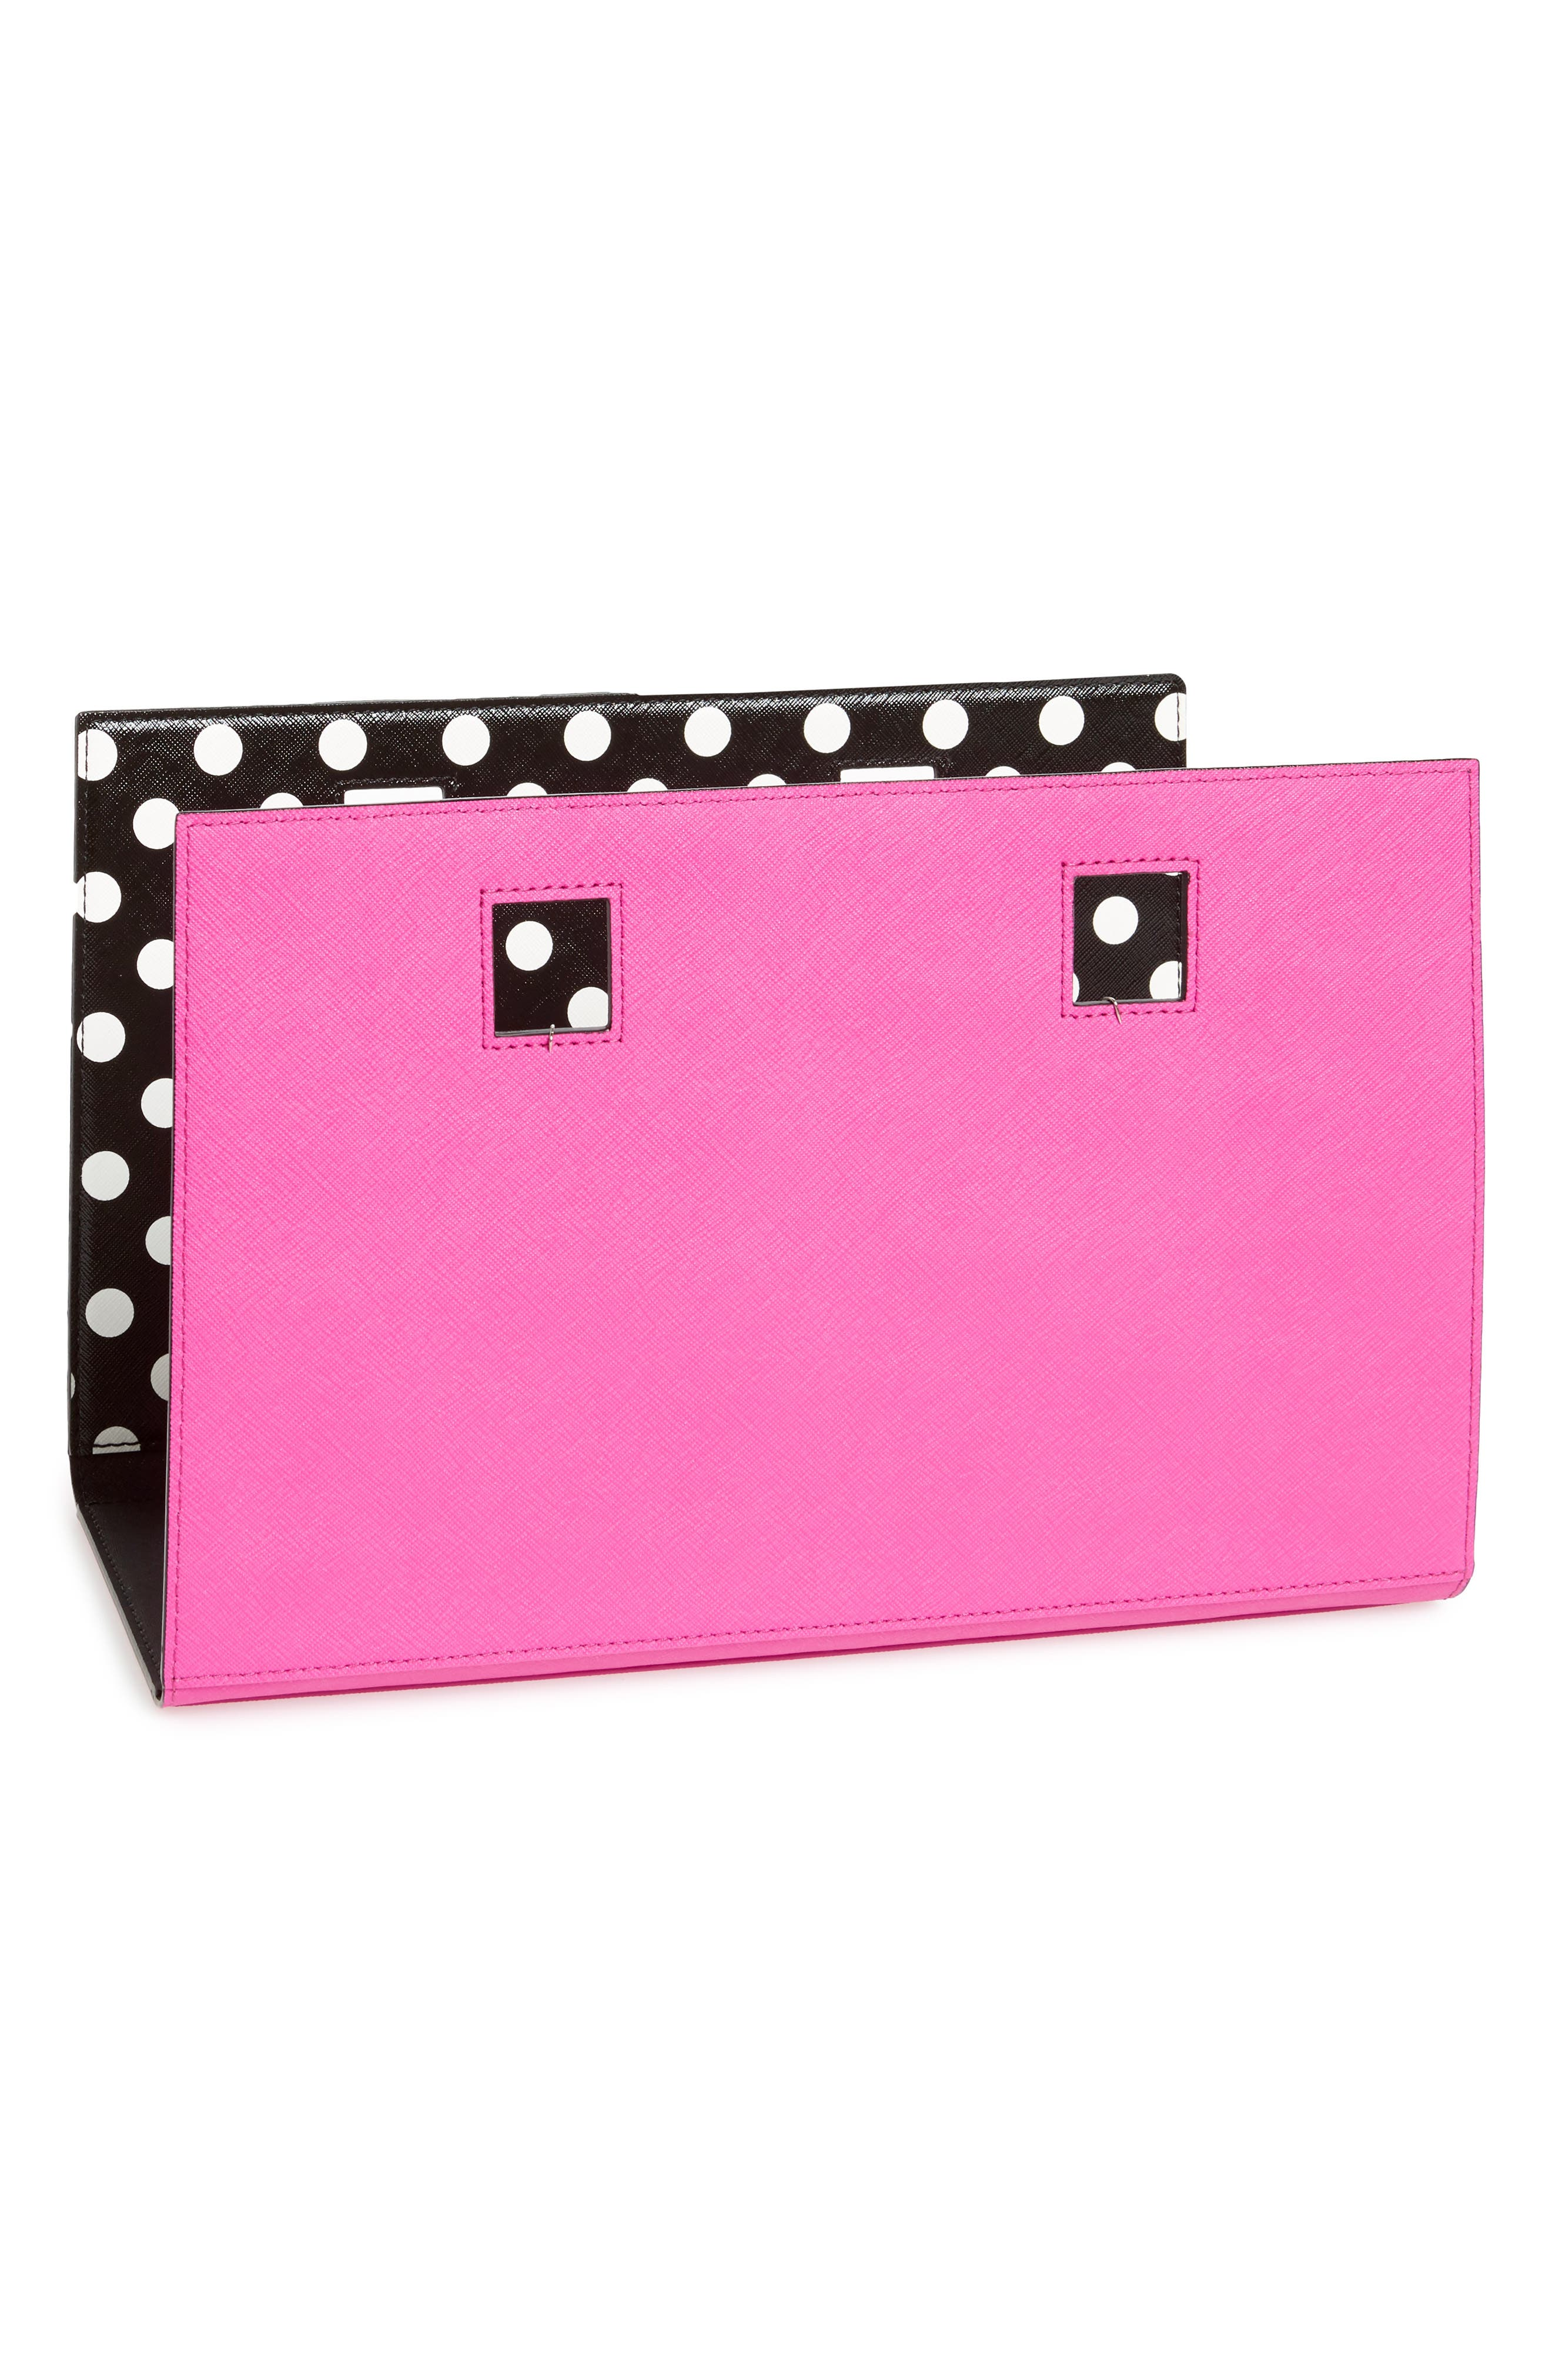 make it mine reversible polka dot/solid leather snap-on accent flap,                             Alternate thumbnail 3, color,                             010